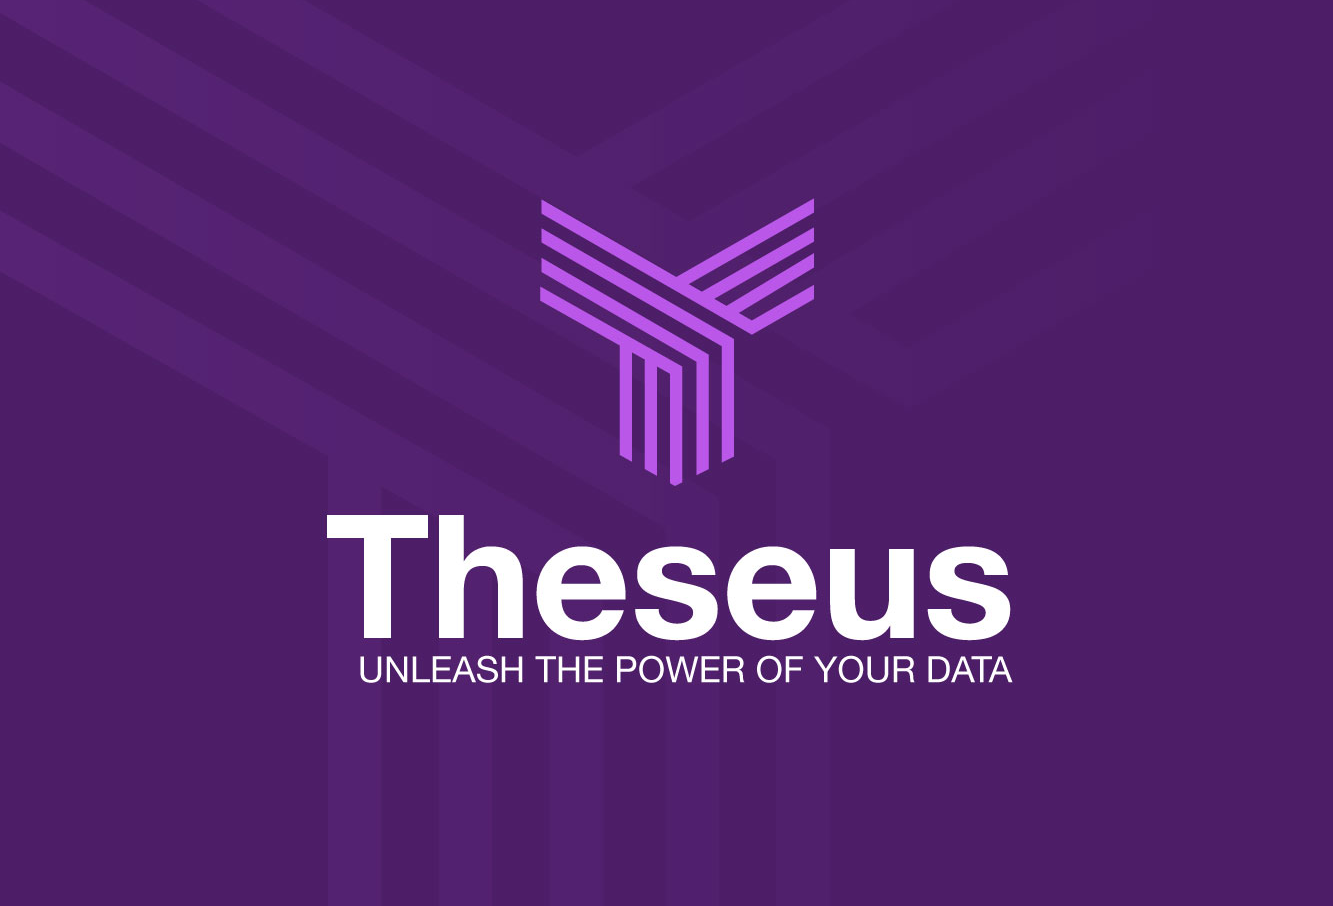 theseus-logo2